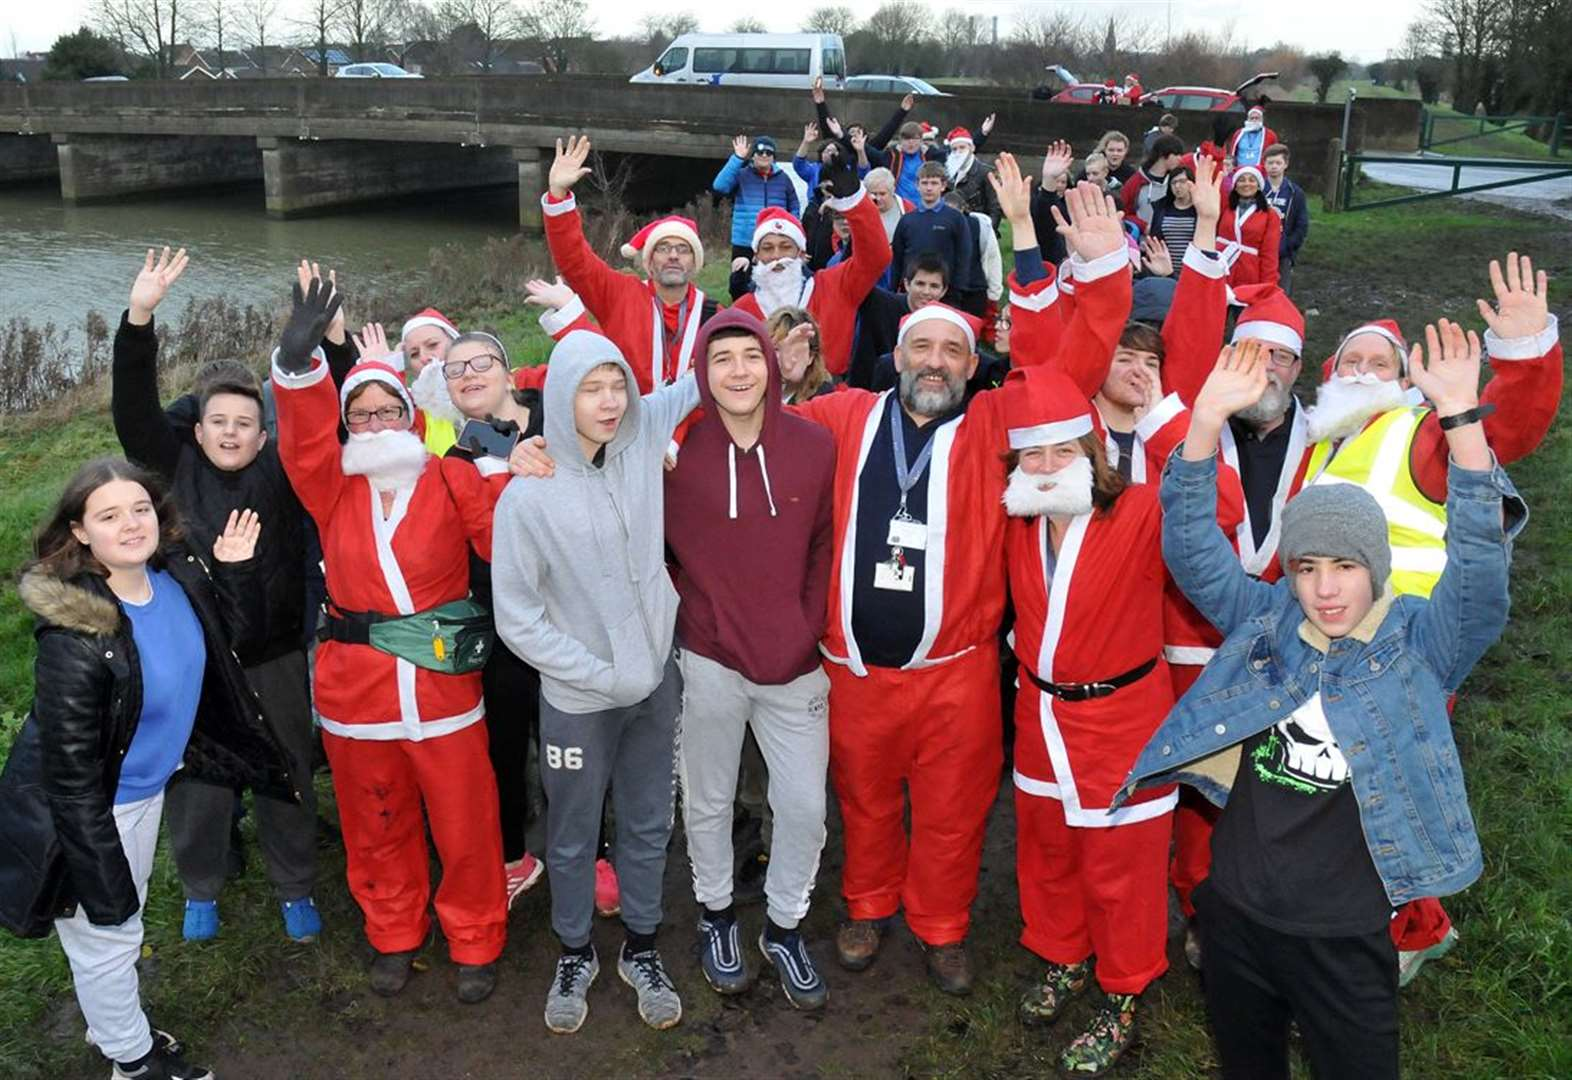 PHOTO GALLERY: School's out for a Santa fun run